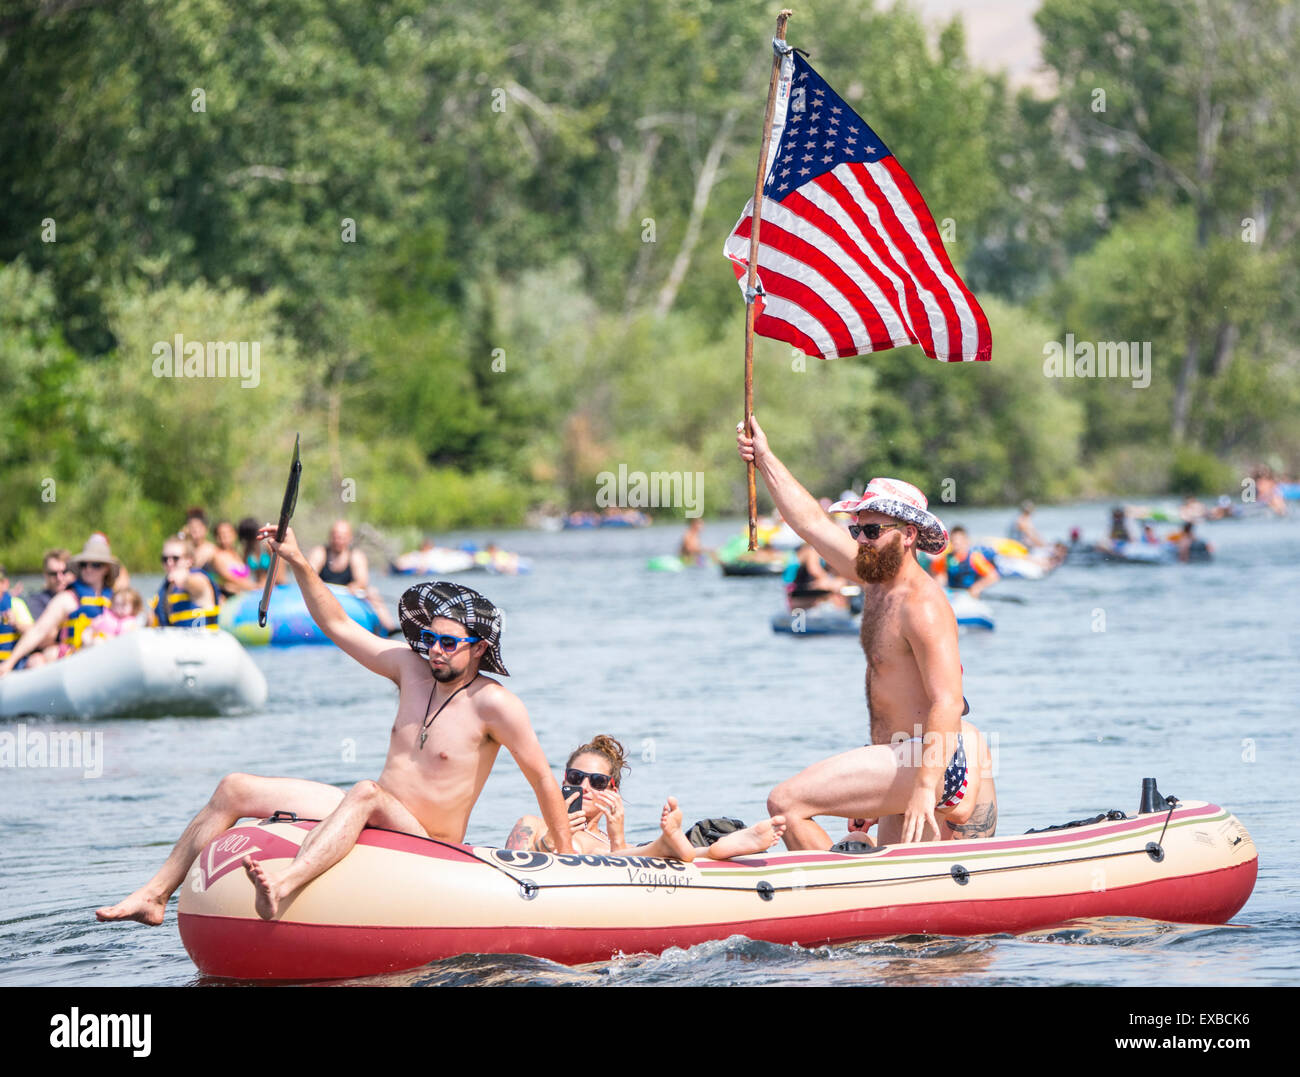 Floating the Boise River on the 4th of July. Man with USA flag, hat and swim trunks celebrating the 4th on a raft. - Stock Image